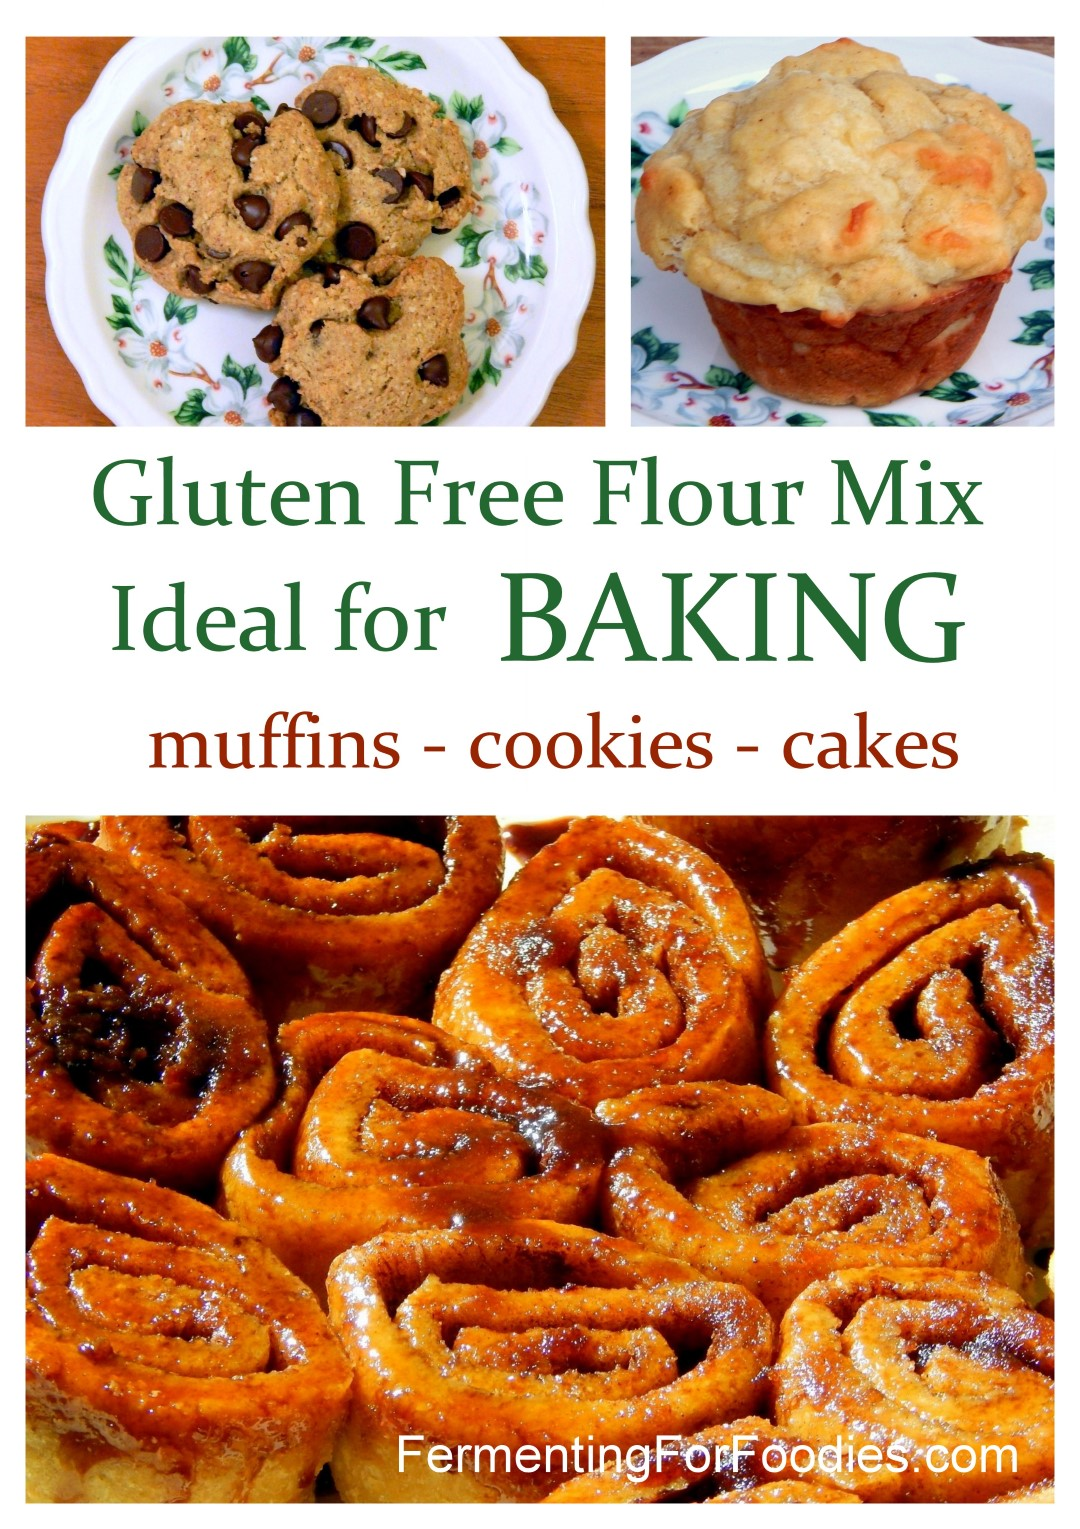 Gluten free flour mix for baking anything! Muffins, cakes and cookies